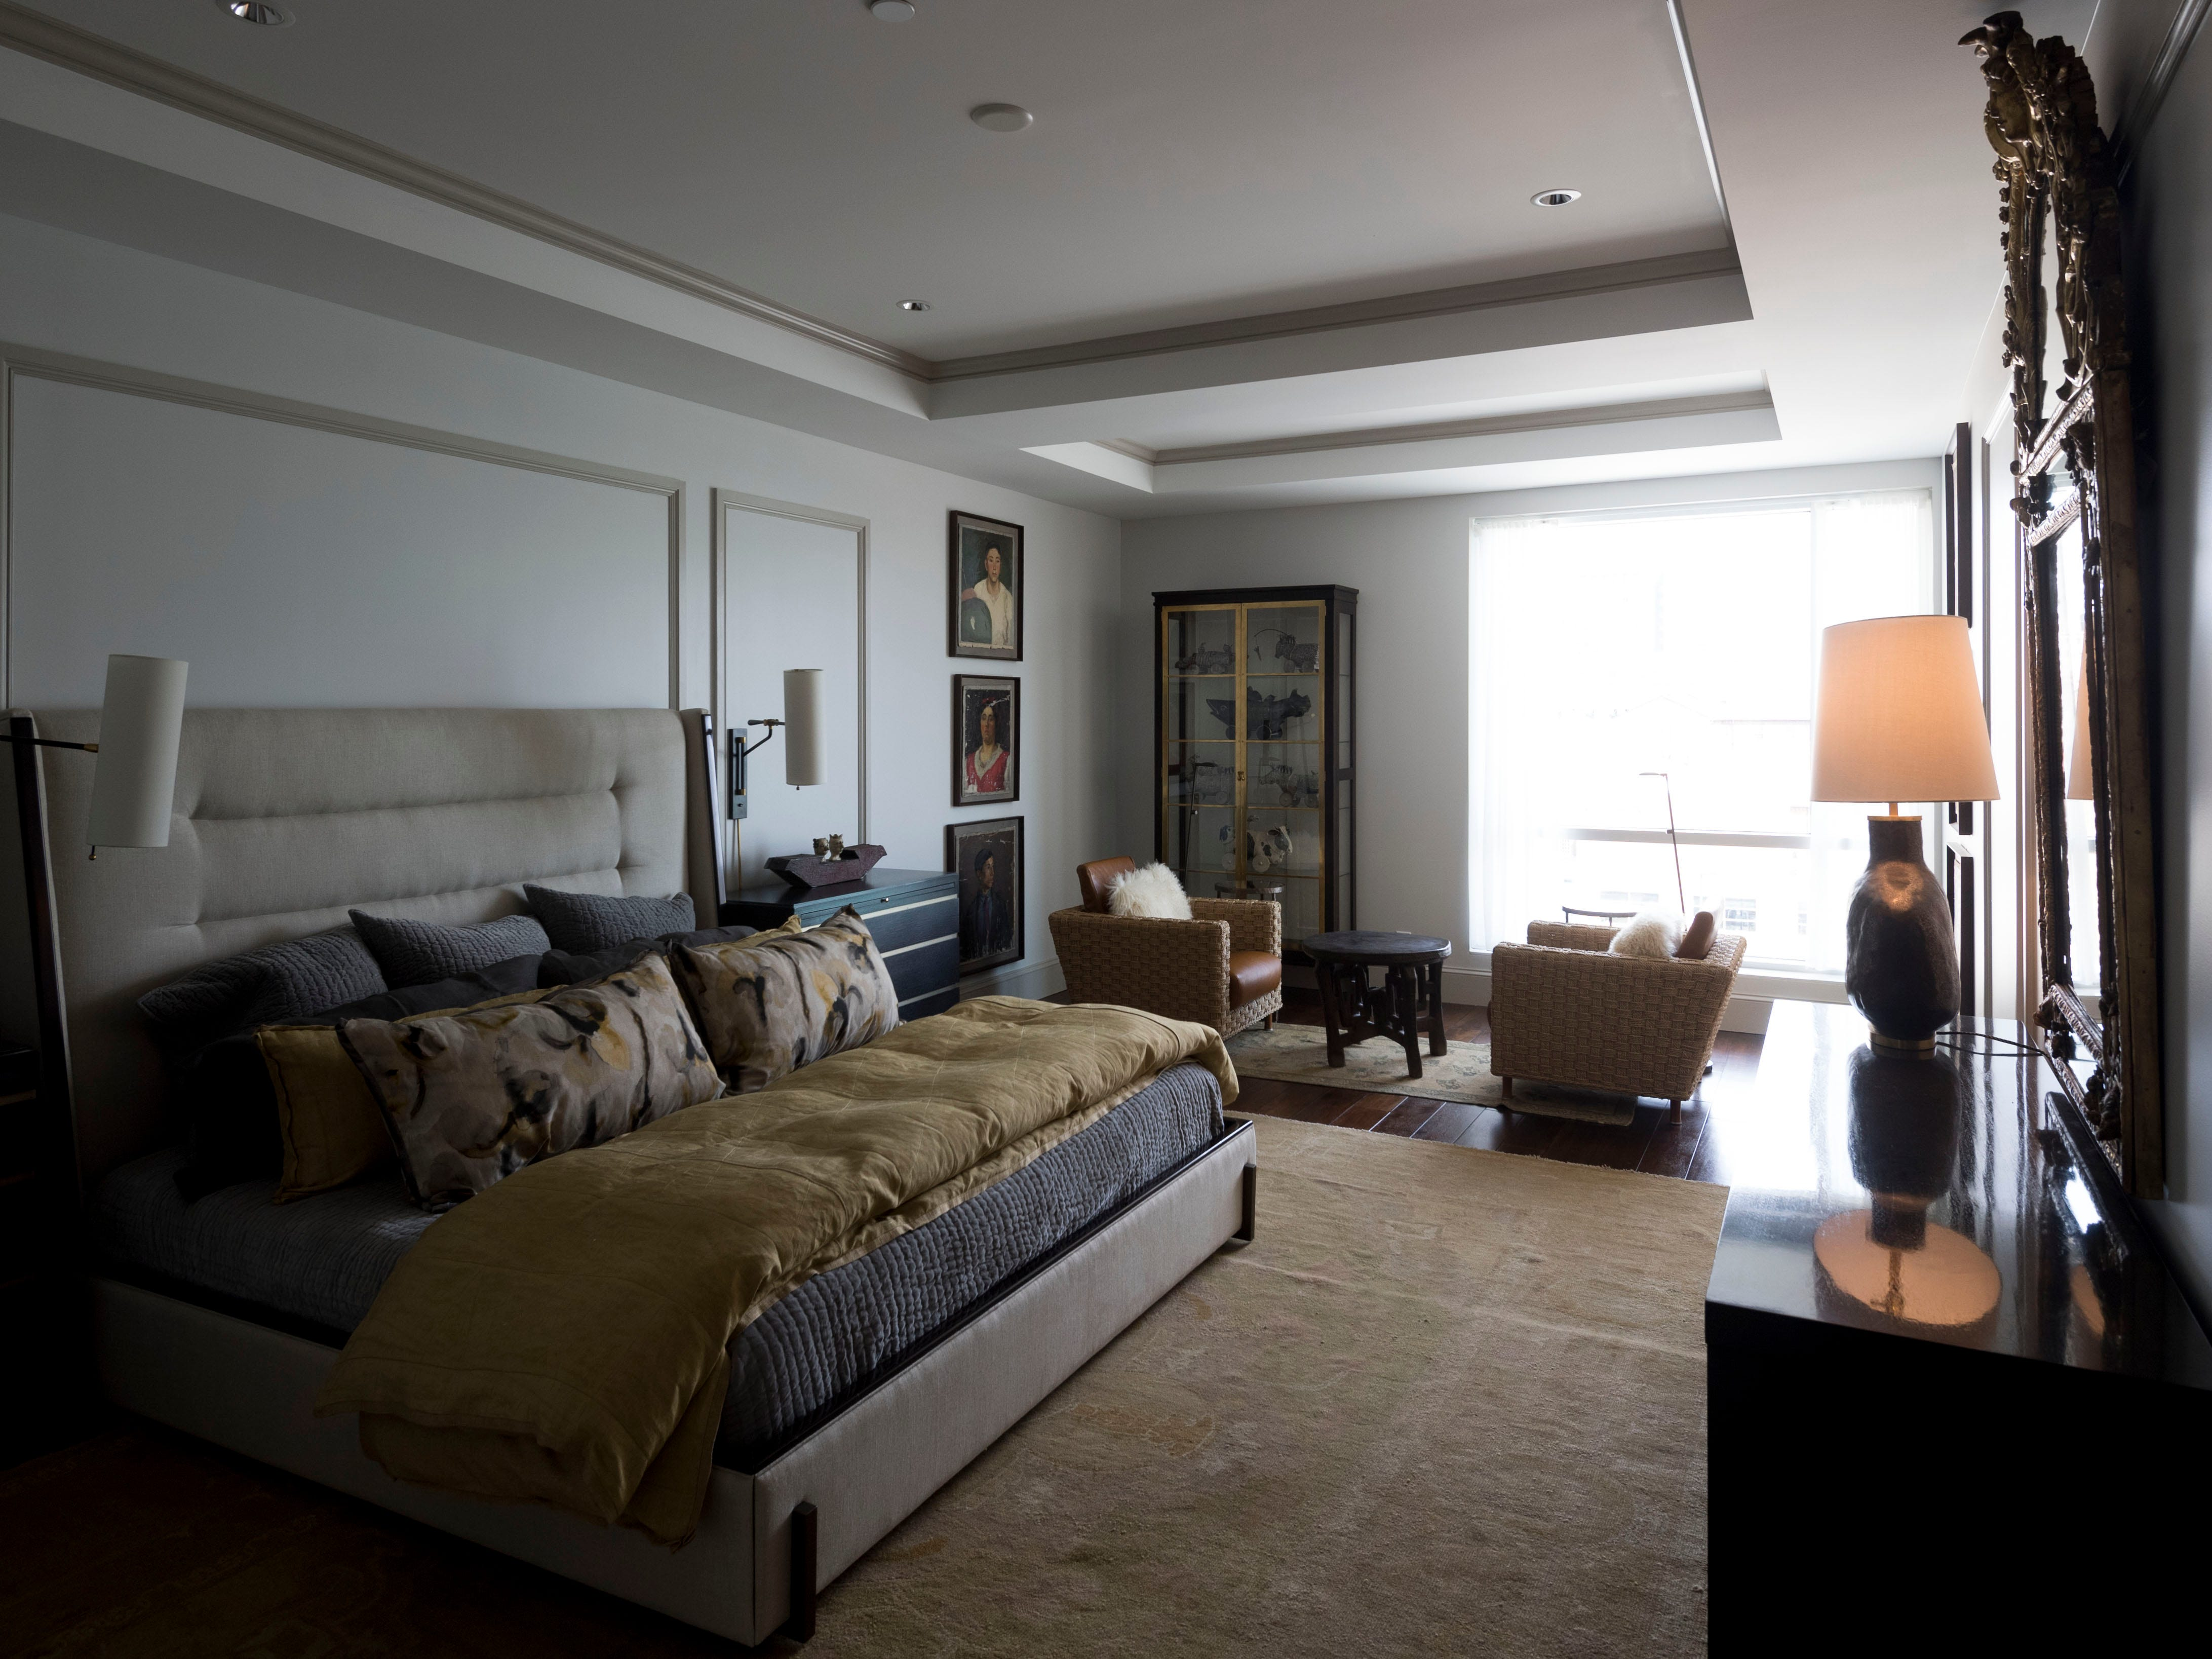 Lawu0027s Interiors And Design Put Together The Master